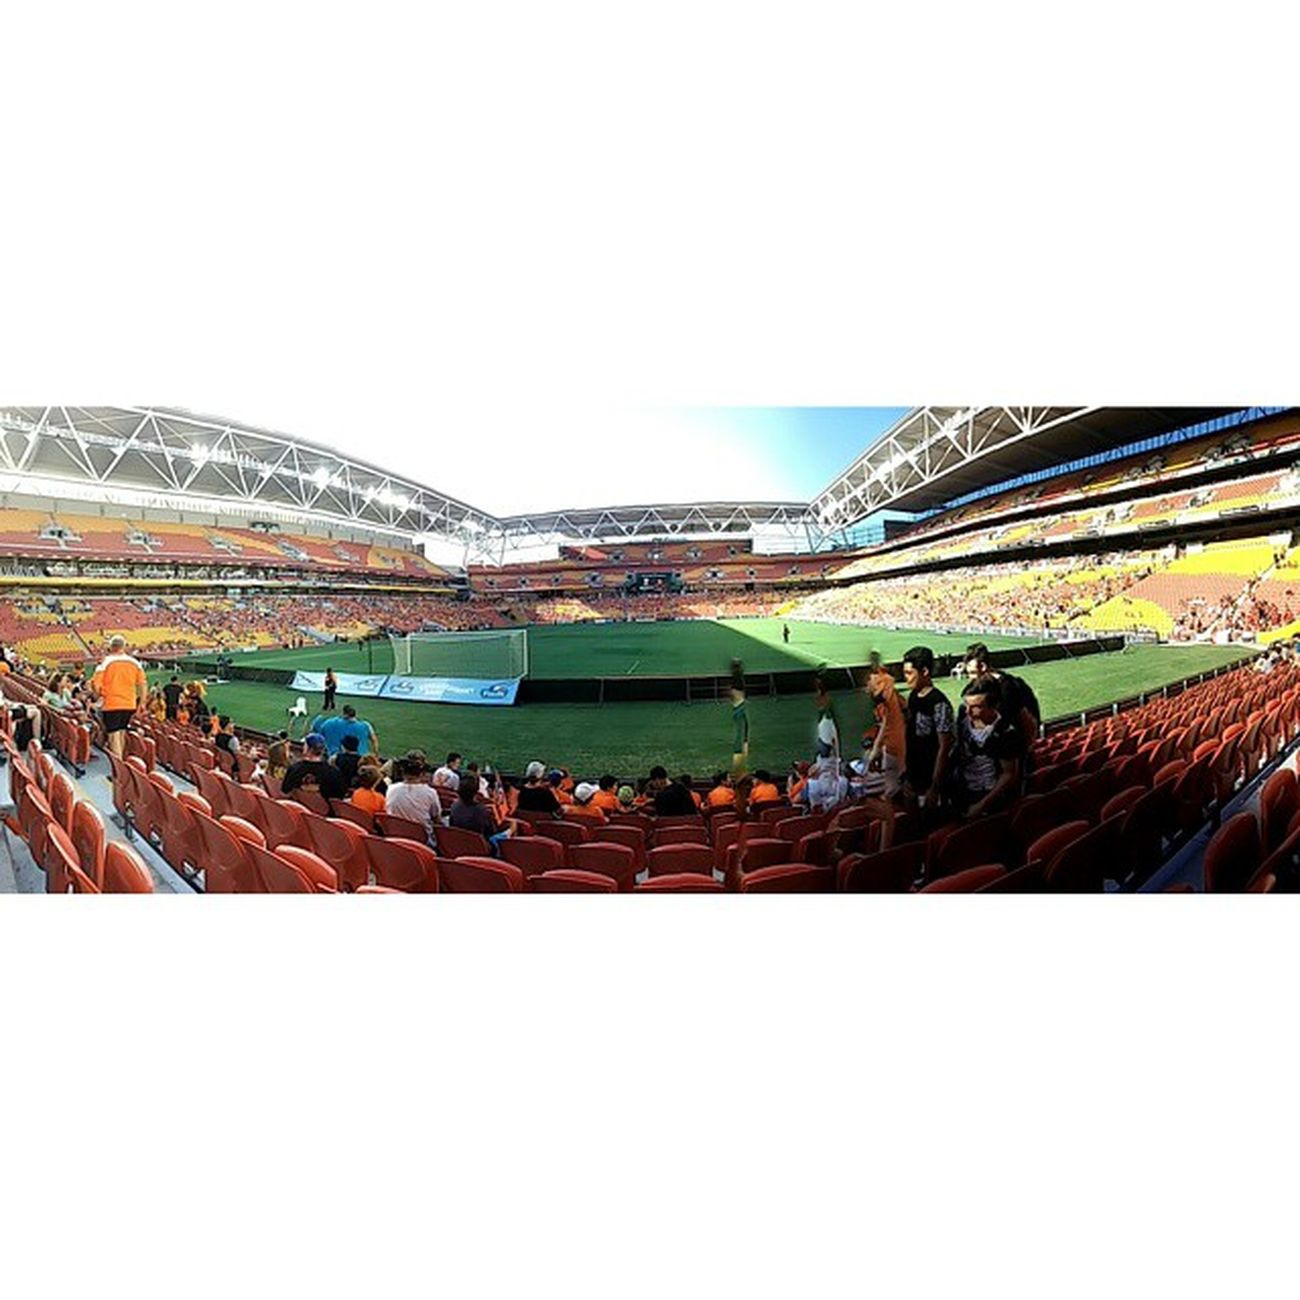 This is my first time to see professional football game in Australia.BrisbaneRoar Football 覺得興奮 覺得幸運 覺得新奇